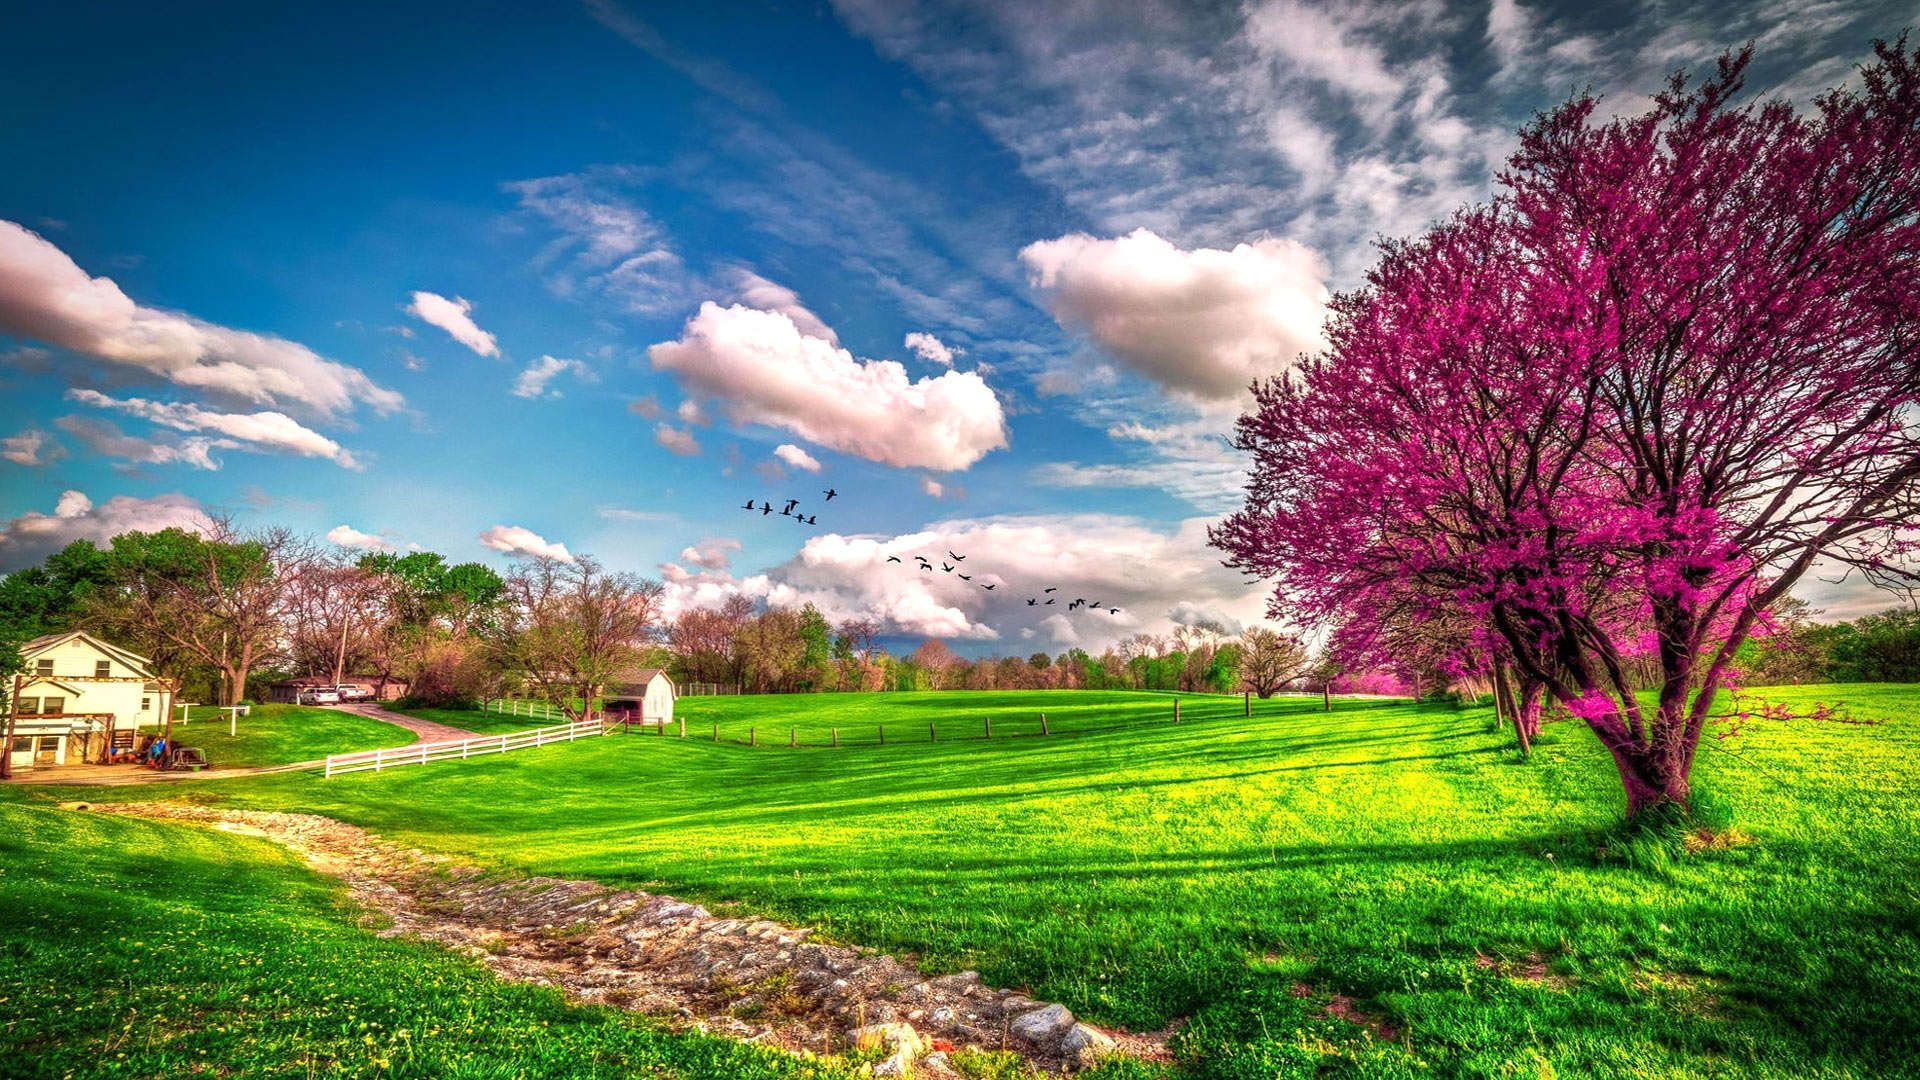 Beautiful Spring Scenery Wallpapers Hd 1080p 1920x1080 Desktop 03 Yoyo Jpg 1920 1080 Scenery Wallpaper Spring Wallpaper Spring Landscape